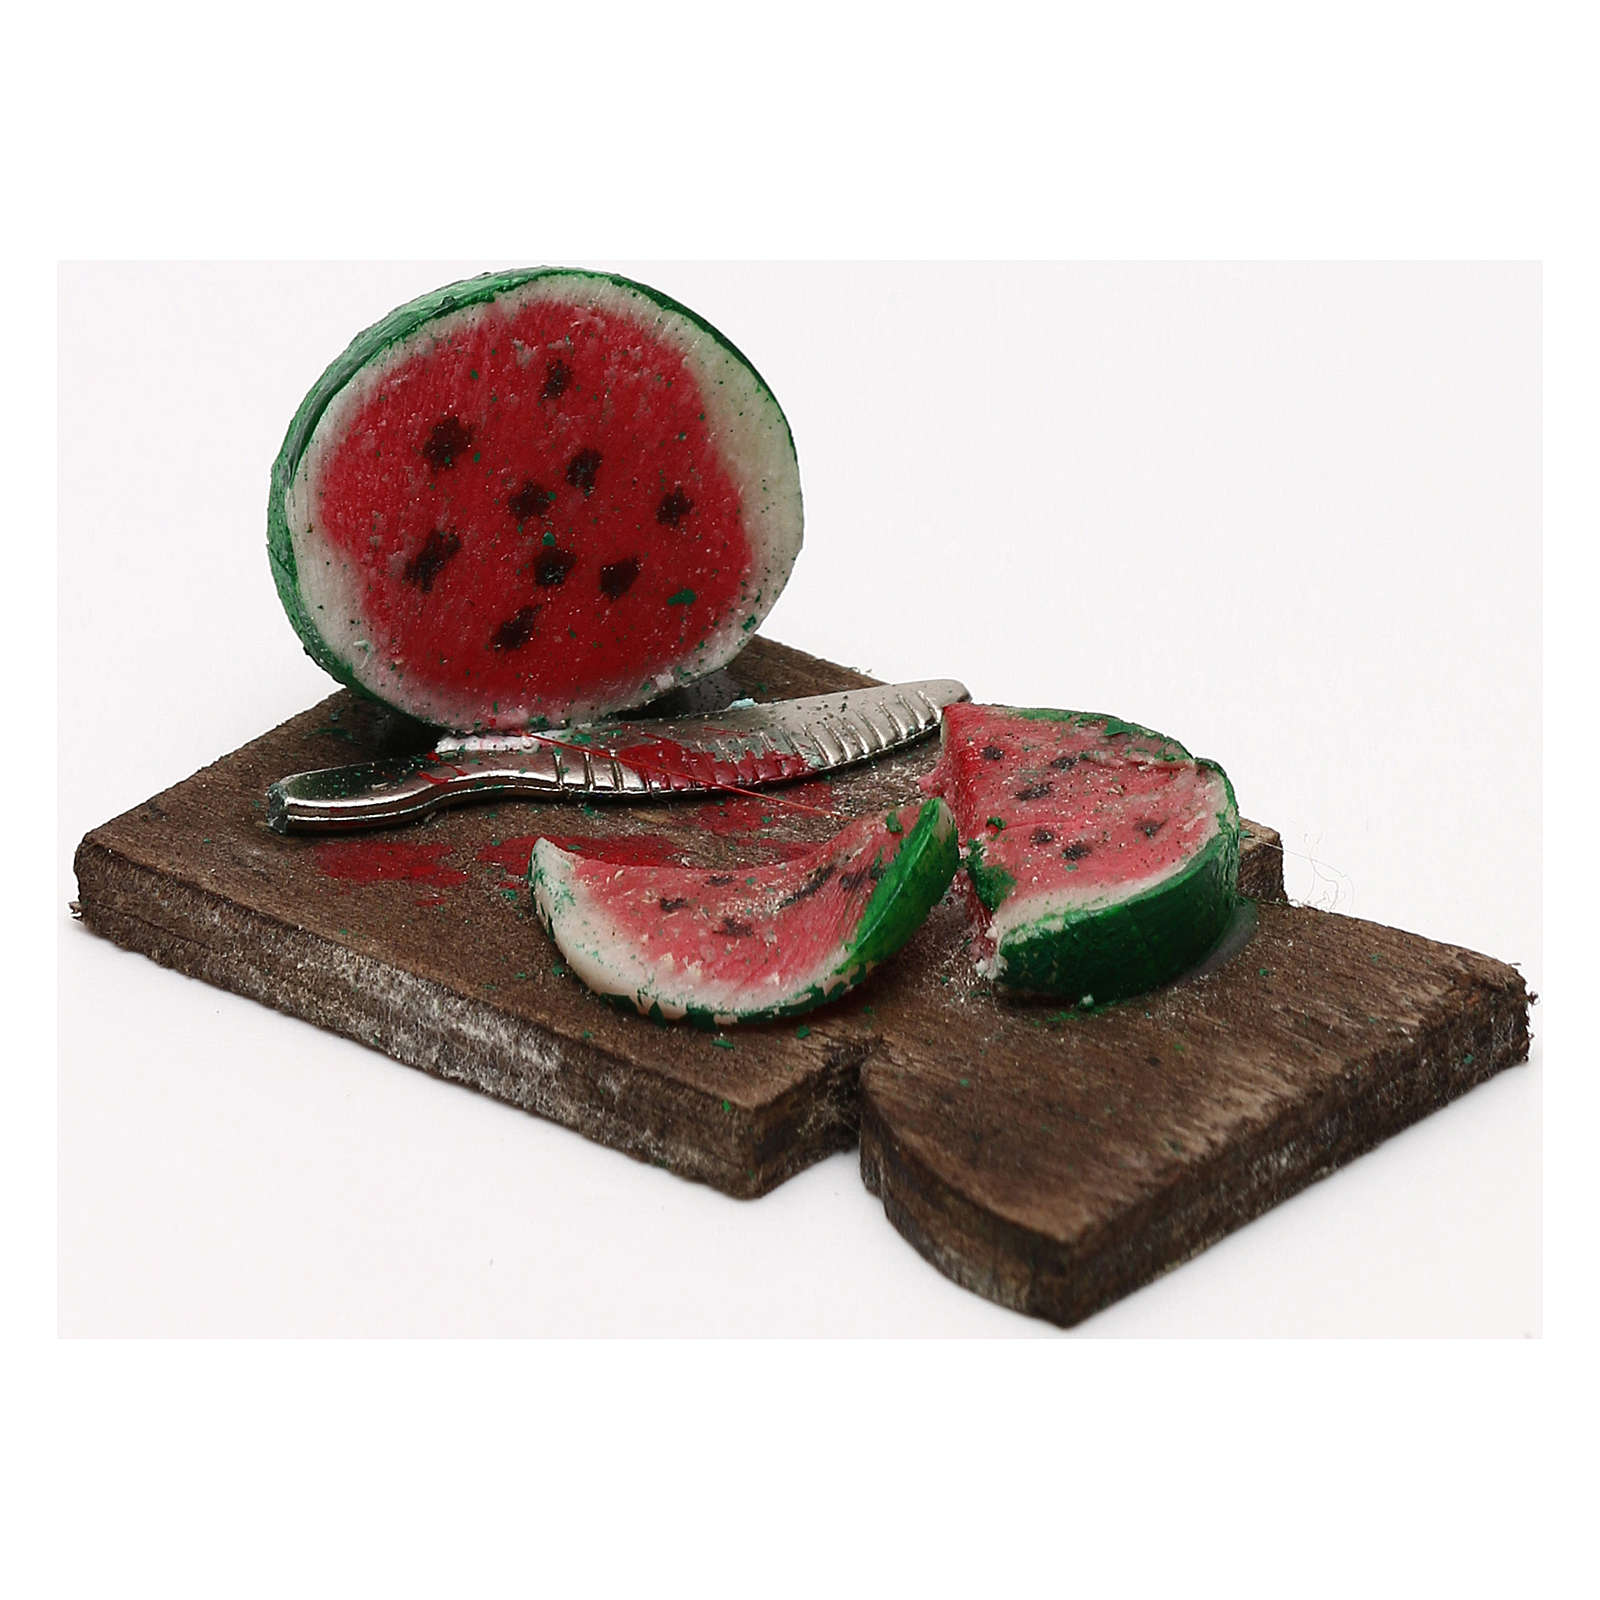 Cutting board with watermelon 24 cm, Neapolitan nativity 4